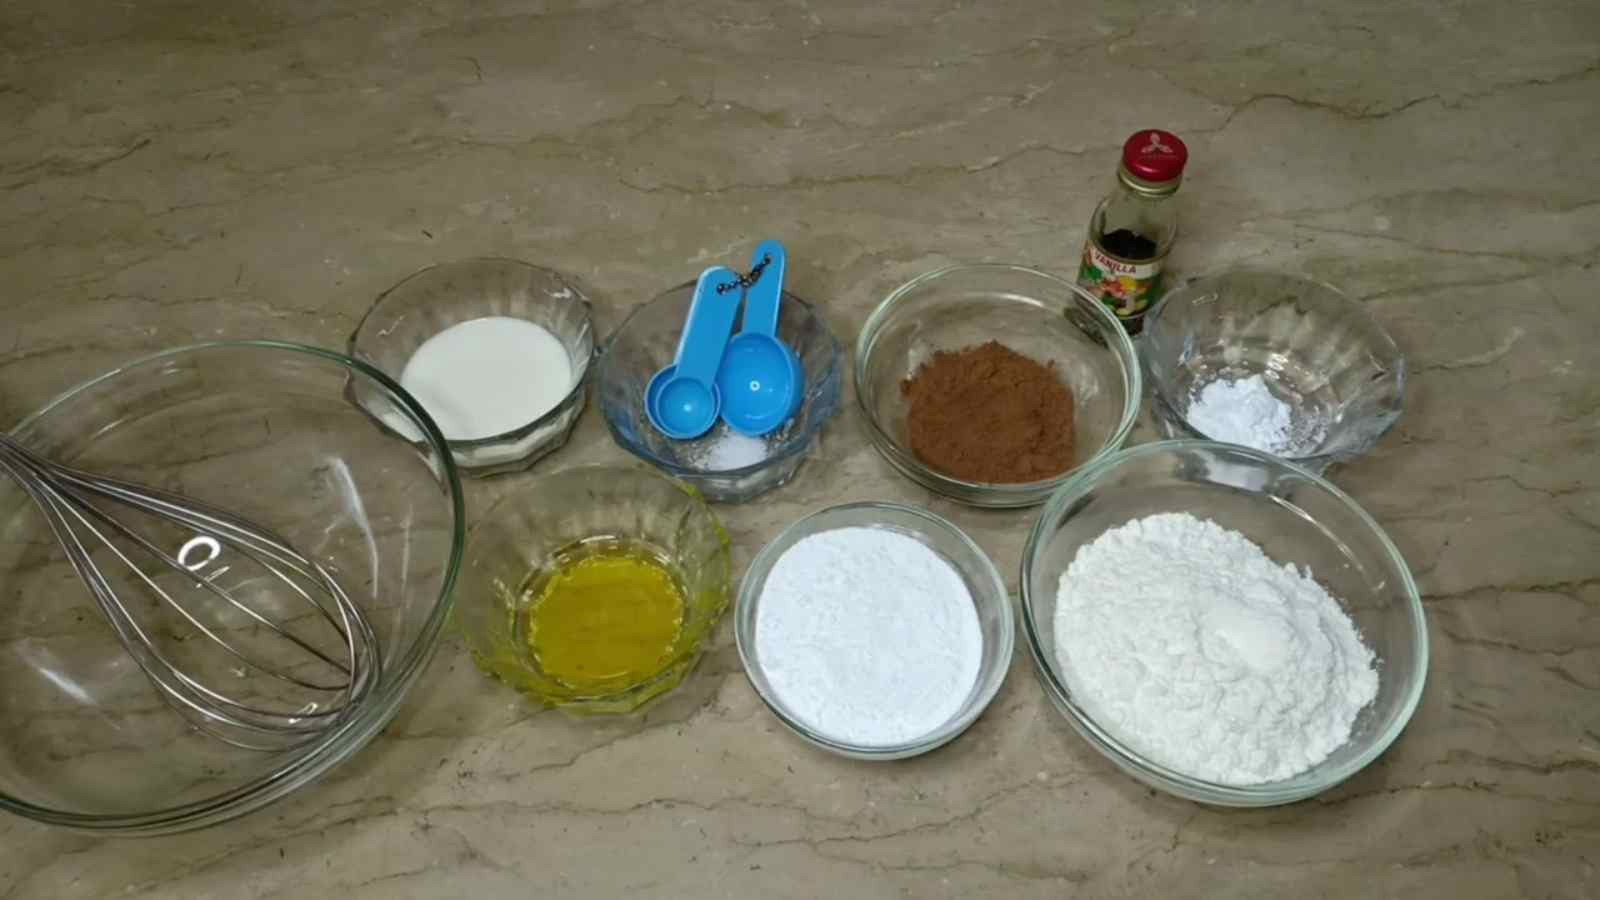 Ingredients for Brownie recipe